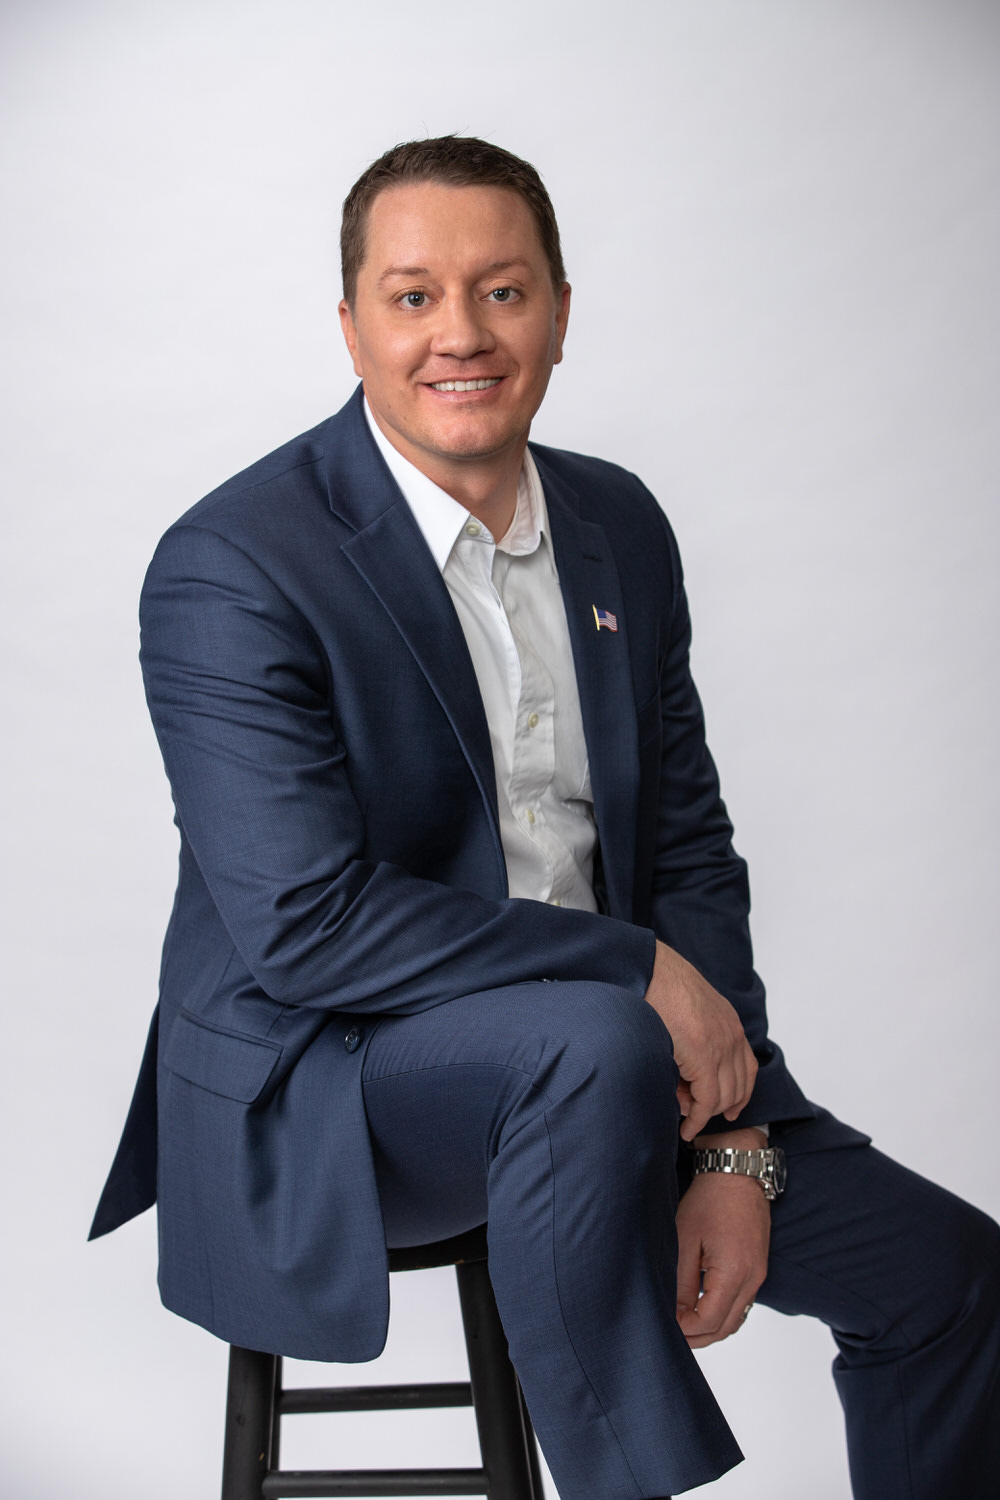 Eli Henderson, Executive Search Director of Marymont Group